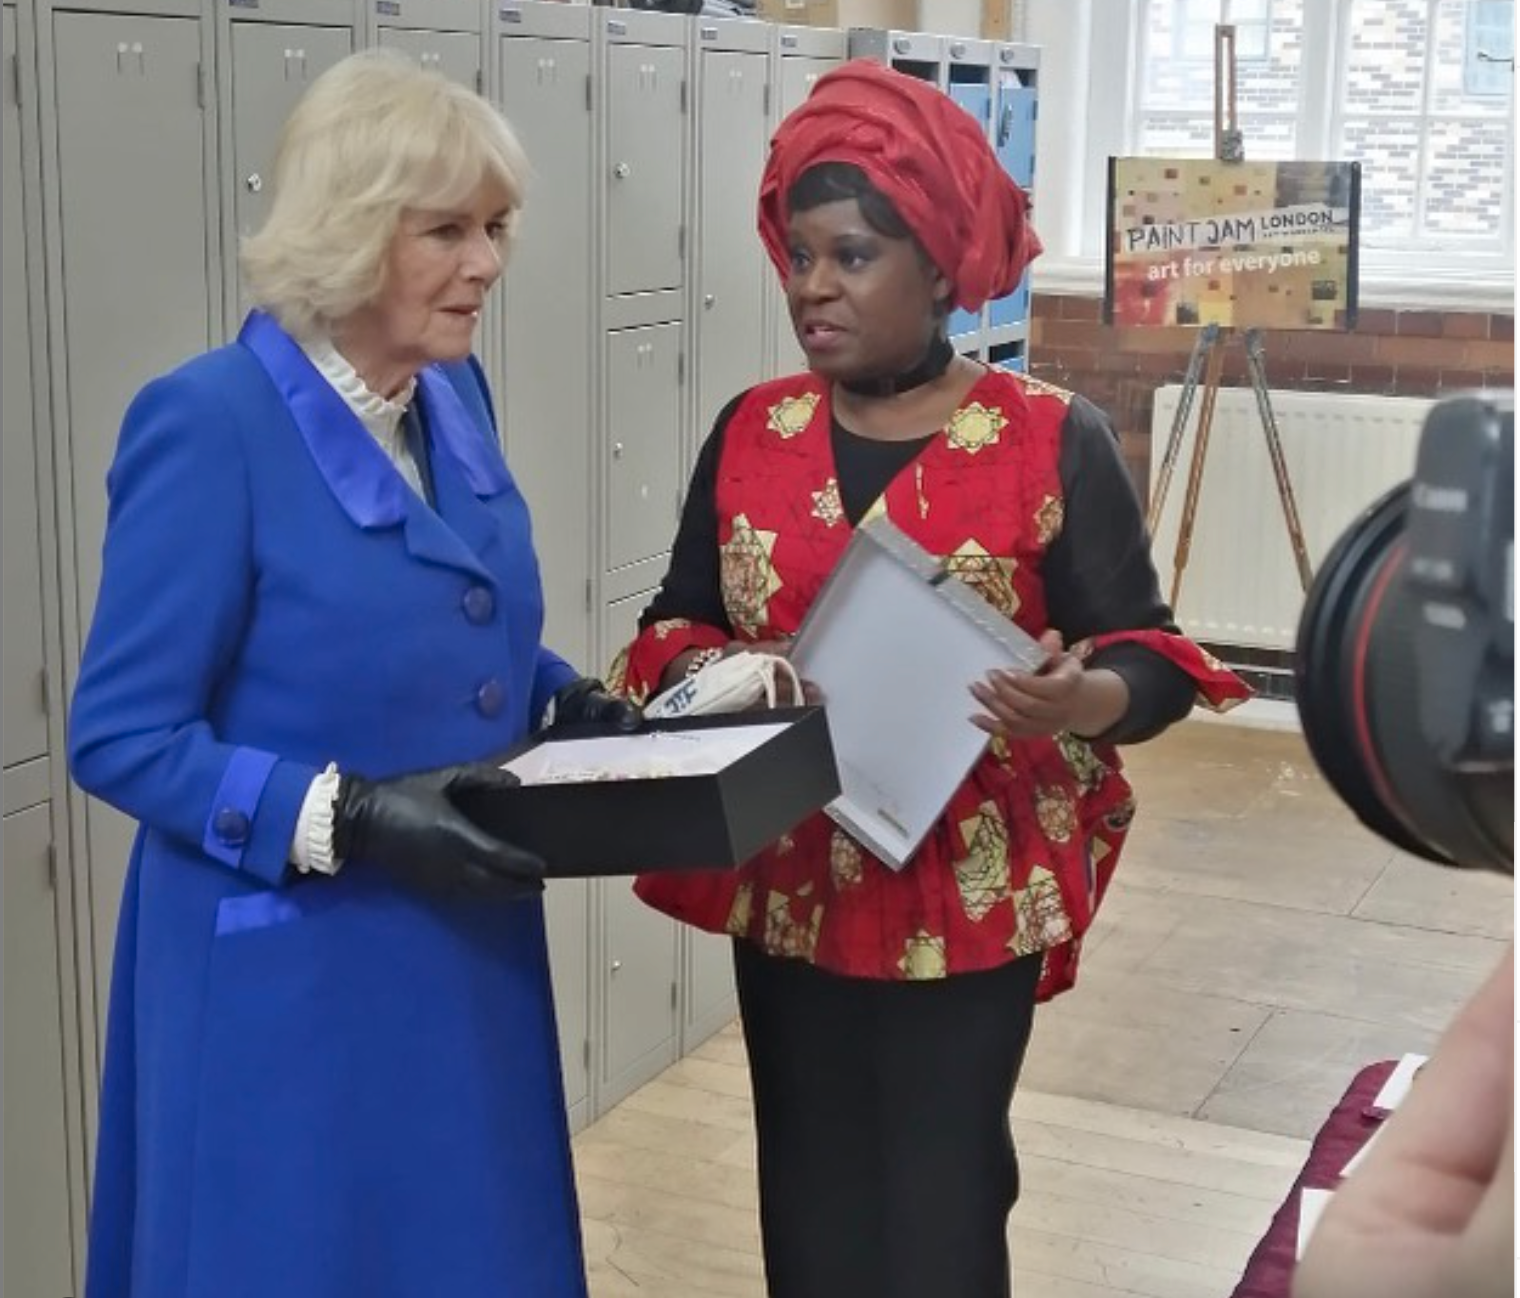 Above: Dayo Williams, founder of Handmade By Dayo card company with the Duchess of Cornwall earlier this year explaining about her business, which creates cards featuring 19 different skin tones.